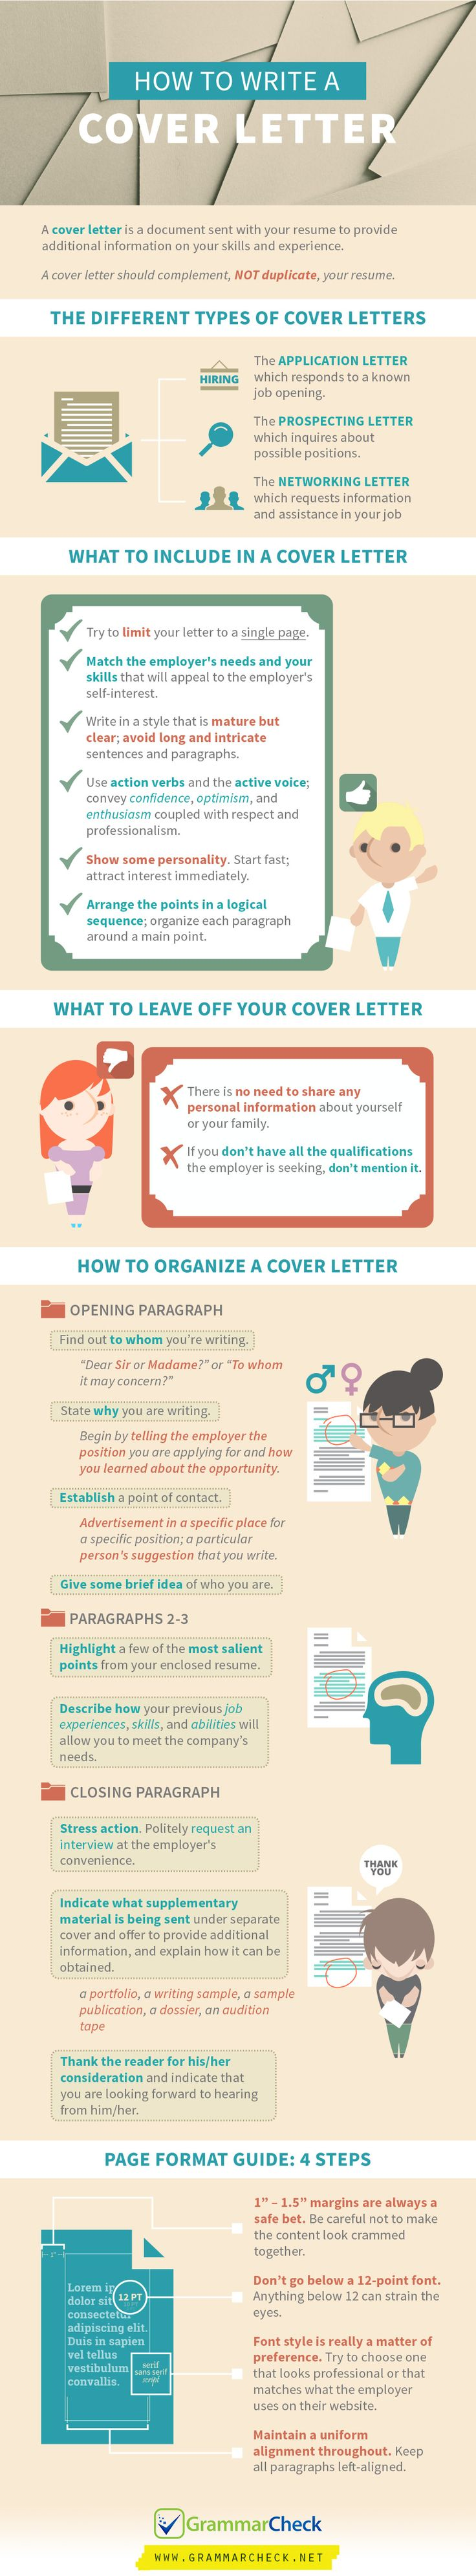 how to write a cover letter step by step writers write steps on how to write a cover letter